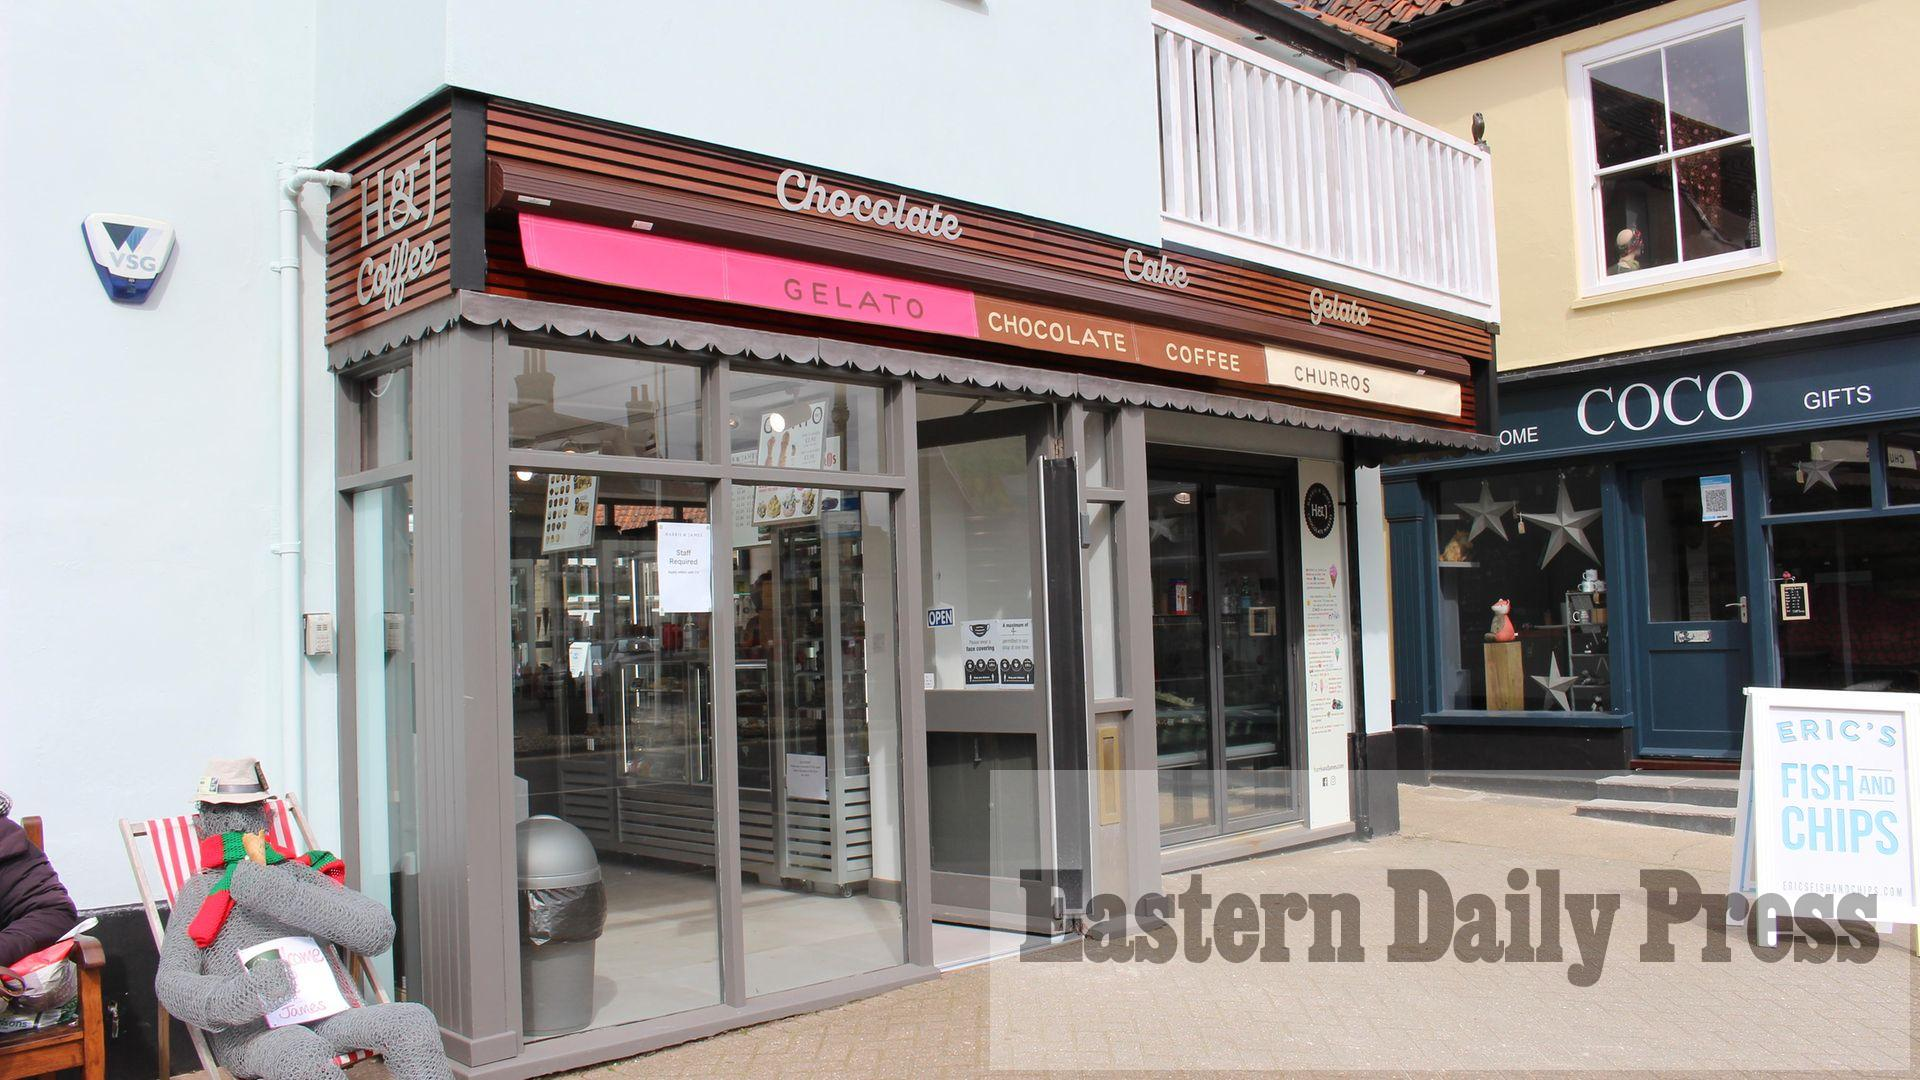 Gelato and chocolate shop to open two new Norfolk stores